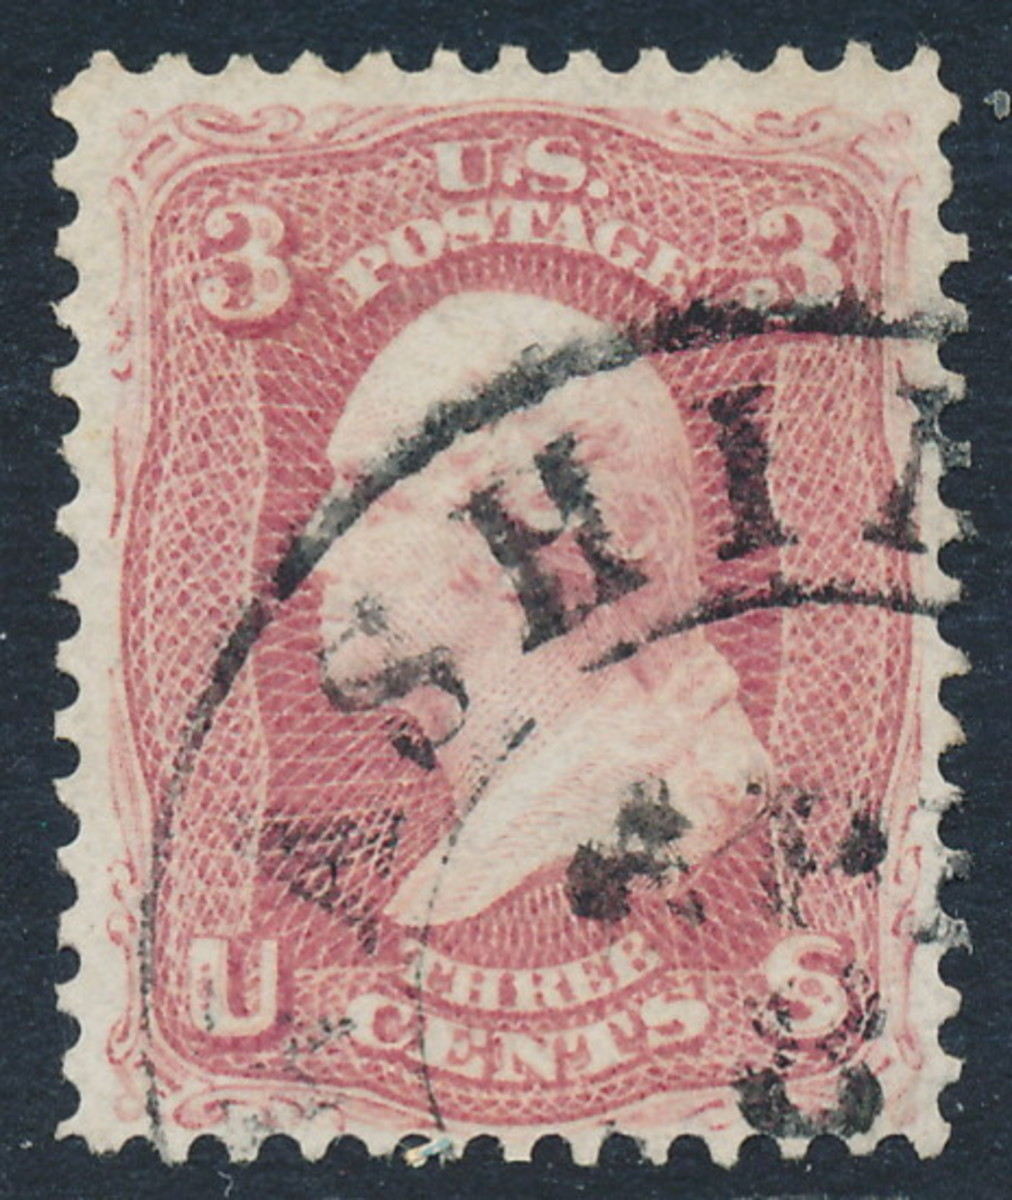 An early US 3c stamp